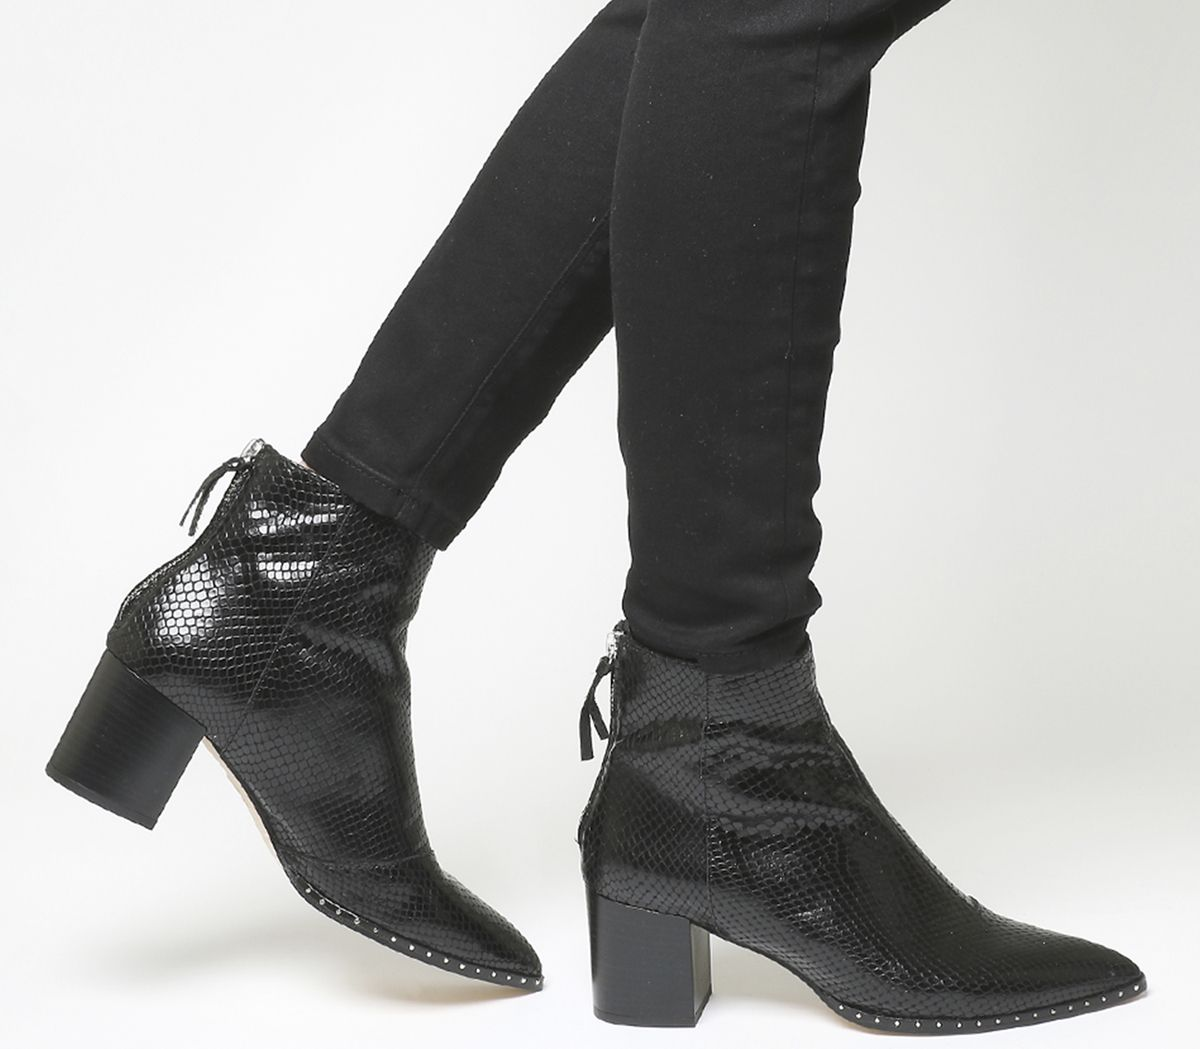 d9a4159443d Office Aromatic Block Heel Boots Black Snake Leather Silver Hardware ...